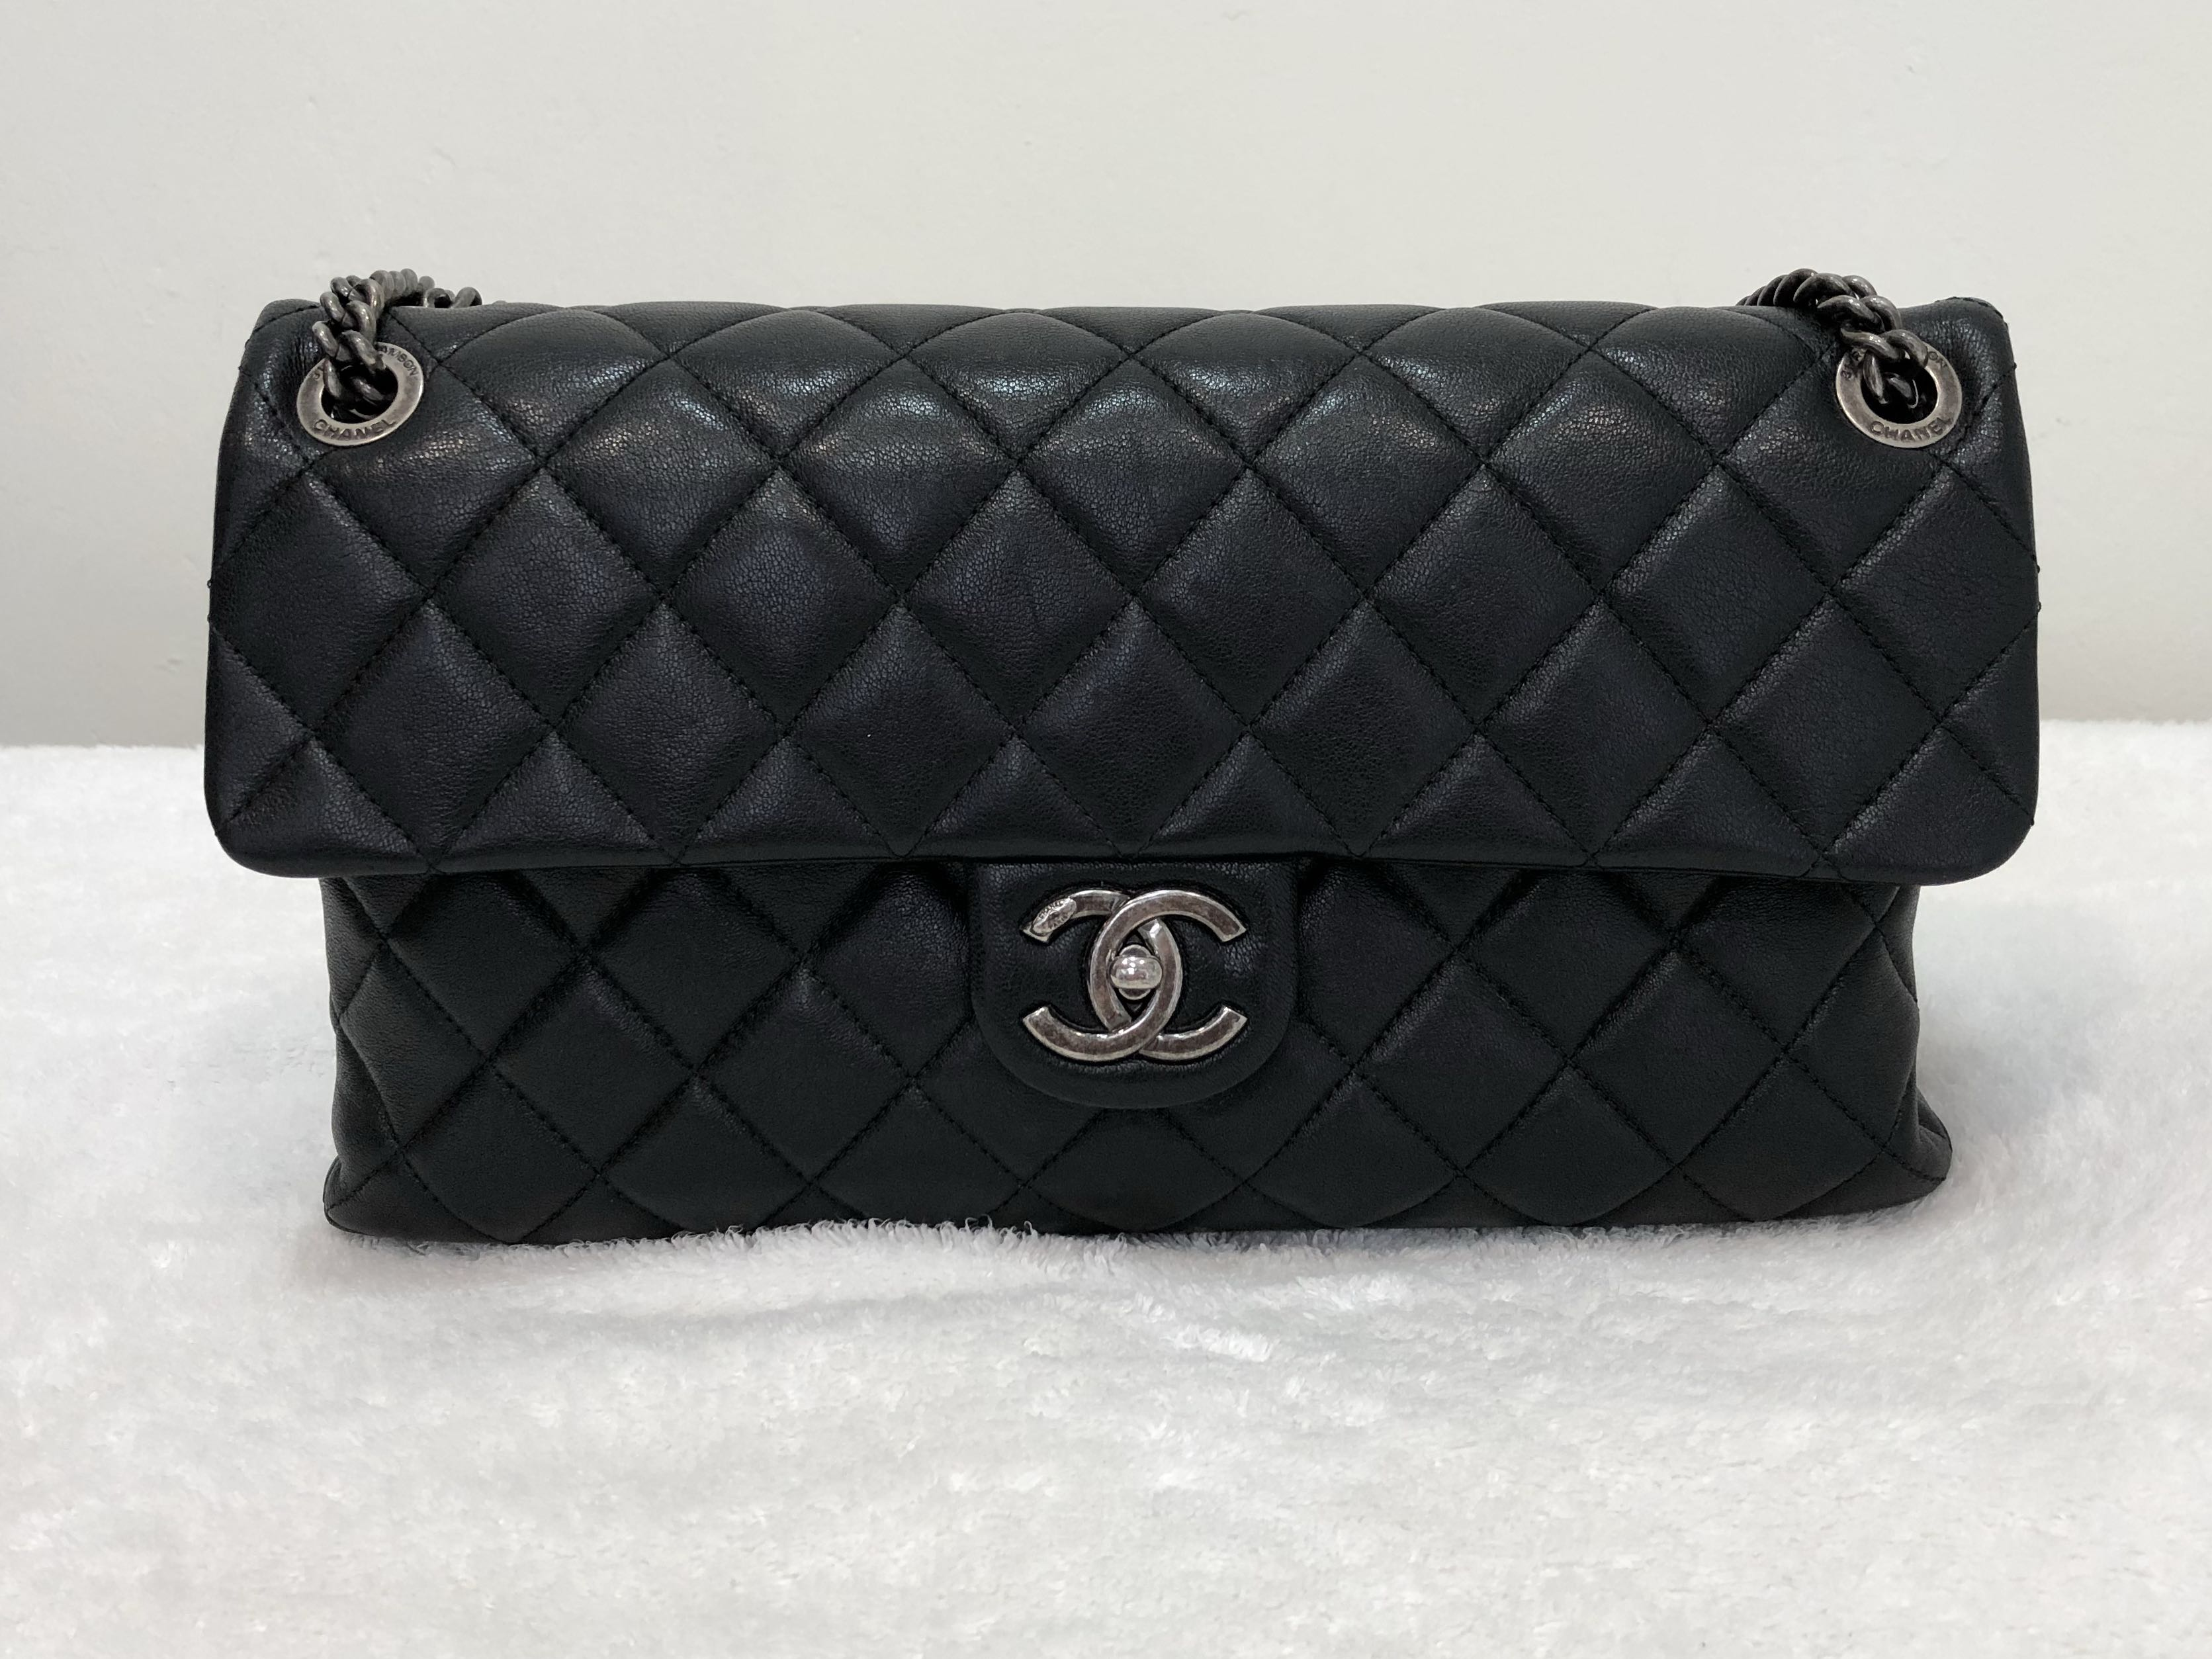 6d7580d08ab3 Authentic Chanel Bag, Luxury, Bags & Wallets, Handbags on Carousell